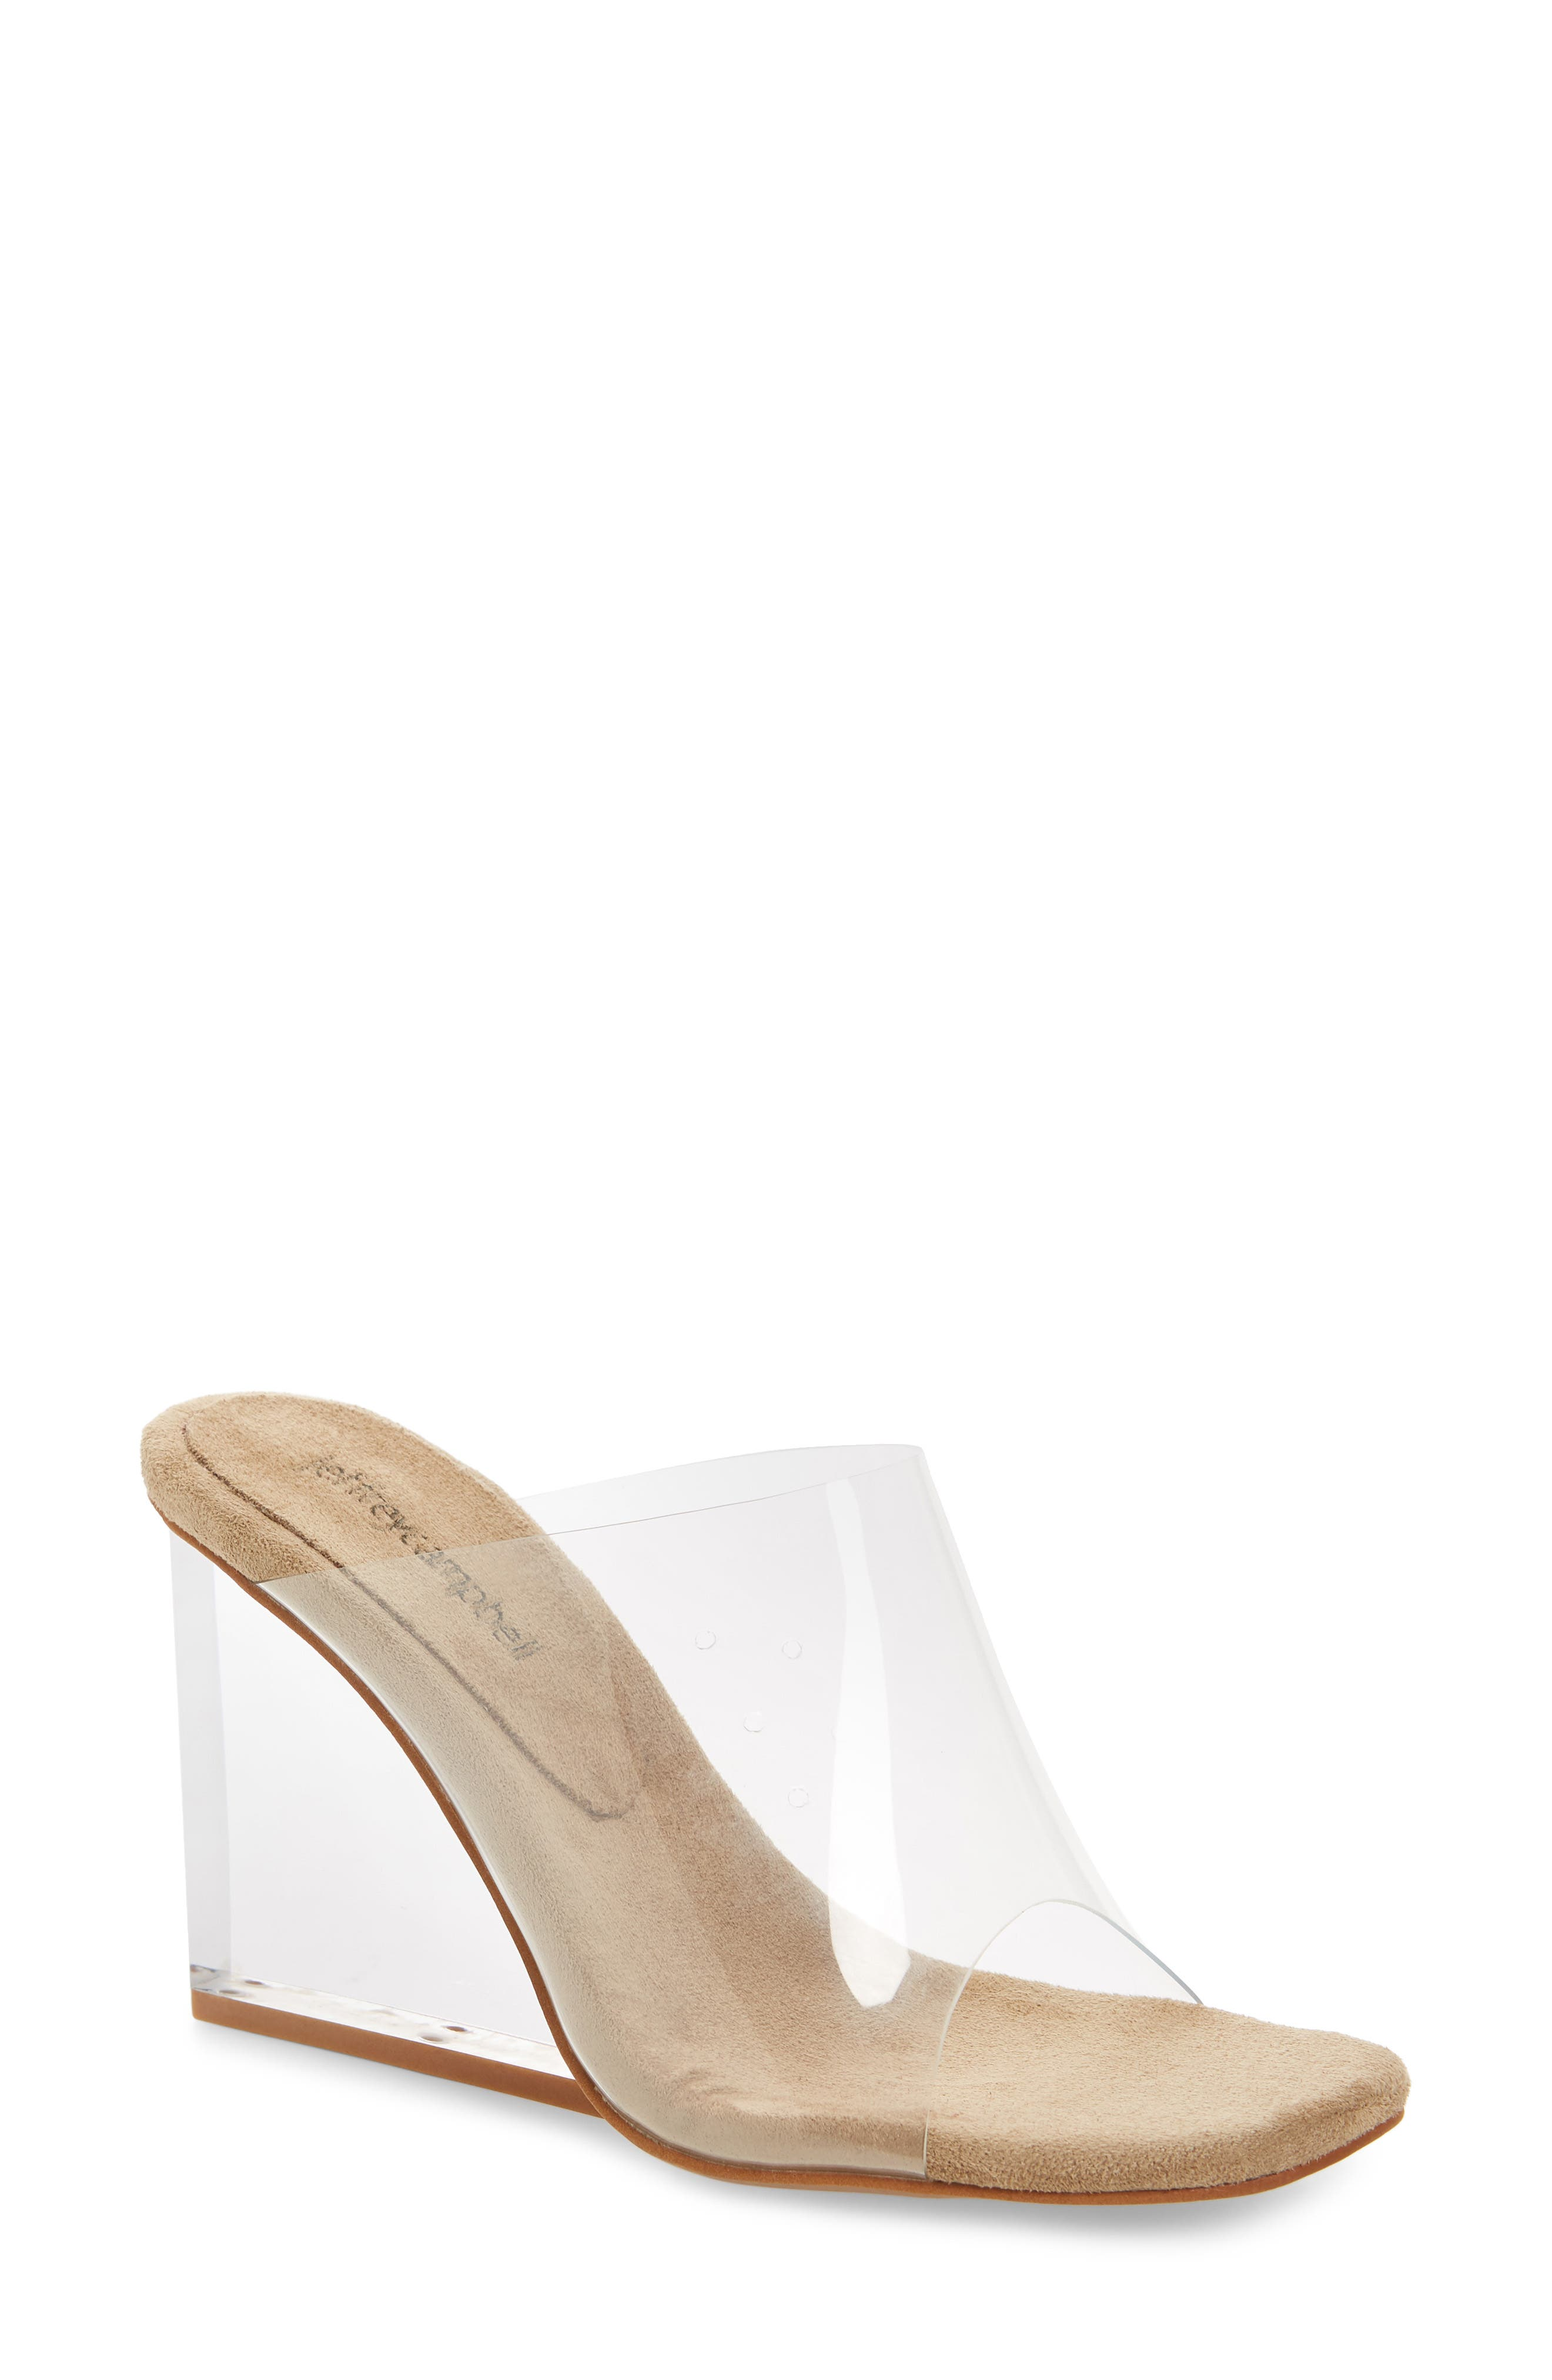 JEFFREY CAMPBELL Clear Wedge Mule, Main, color, CLEAR FAUX LEATHER